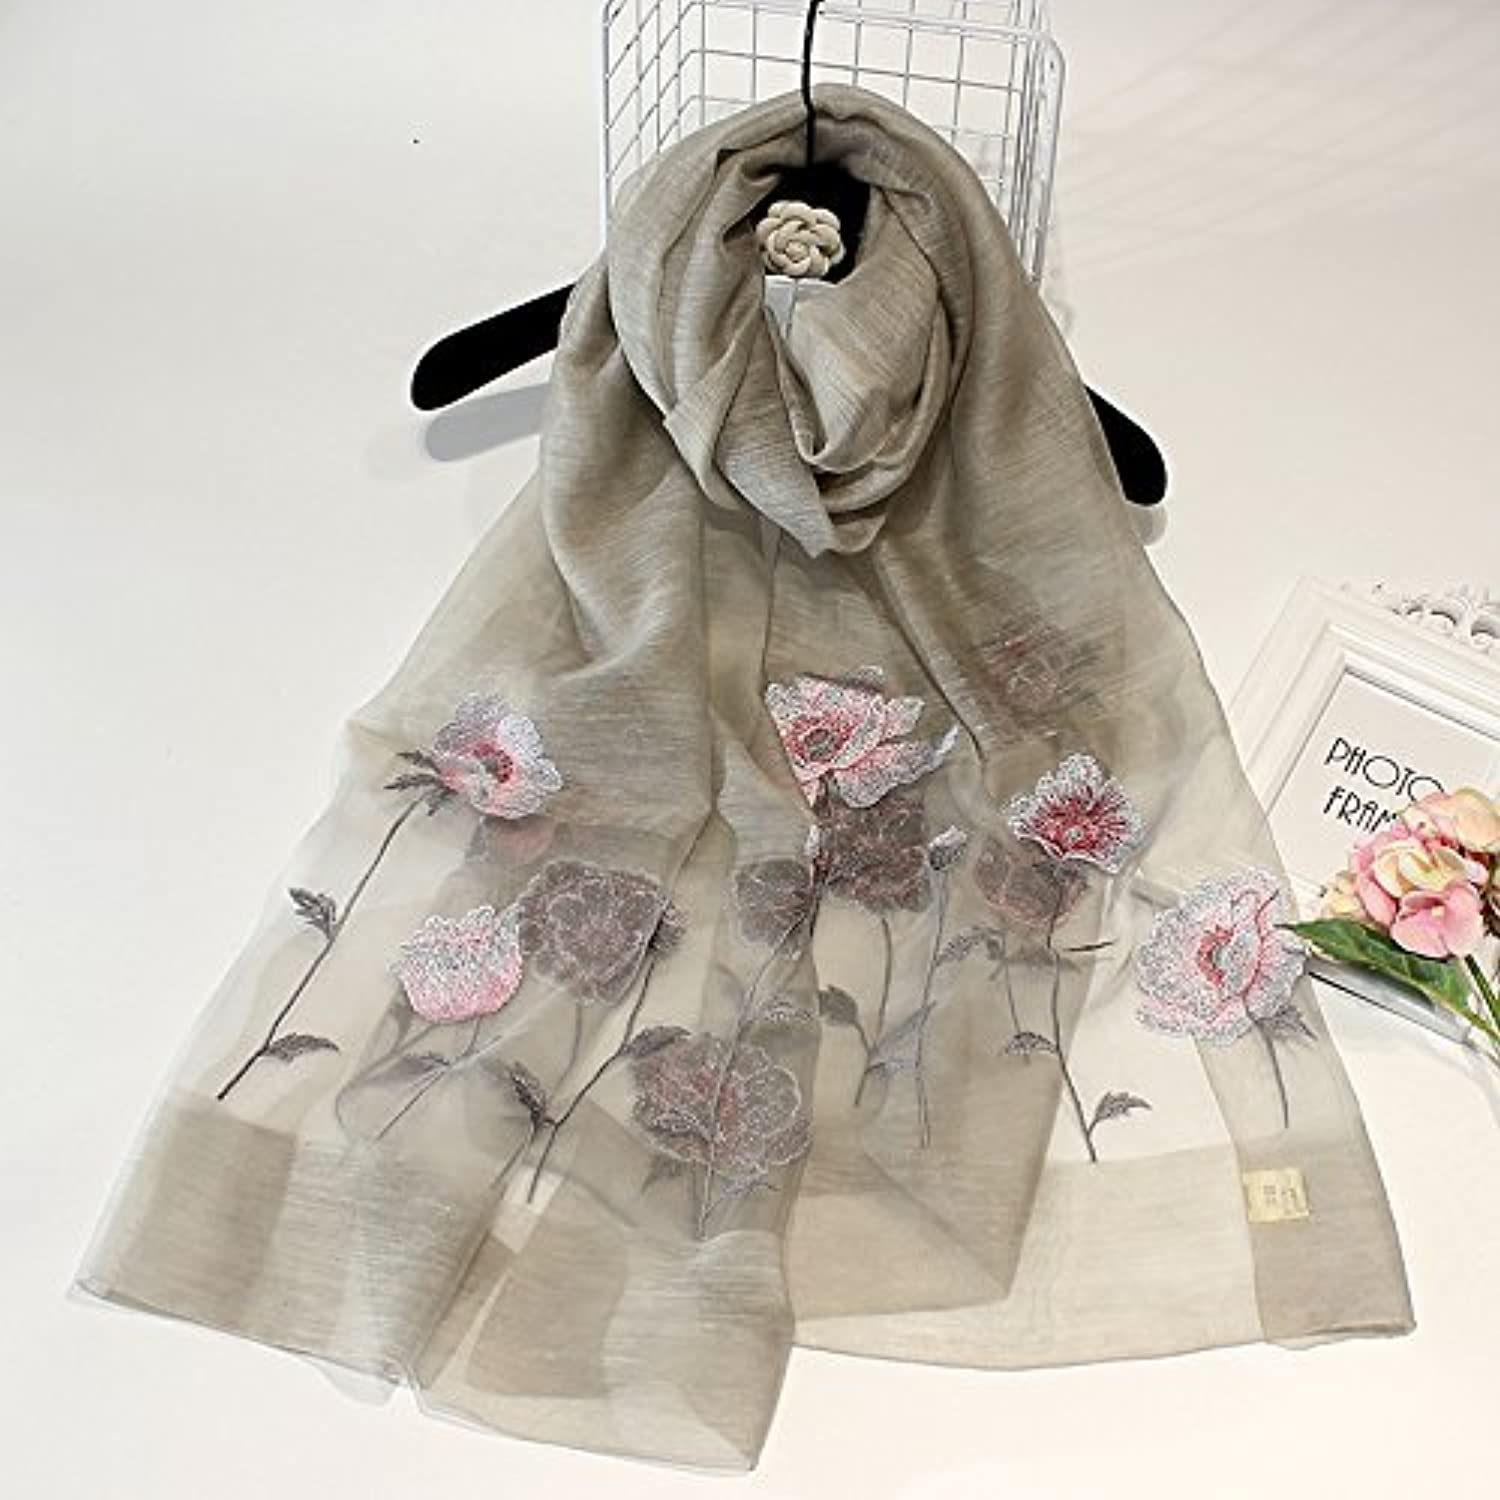 SED ScarfEmbroidered Shawls Silk Embroidered Scarves Scarves Winter and Winter Sun Towels Imitation Cashmere Scarf Female Autumn and Winter Korean Students Knitted Shawl Long